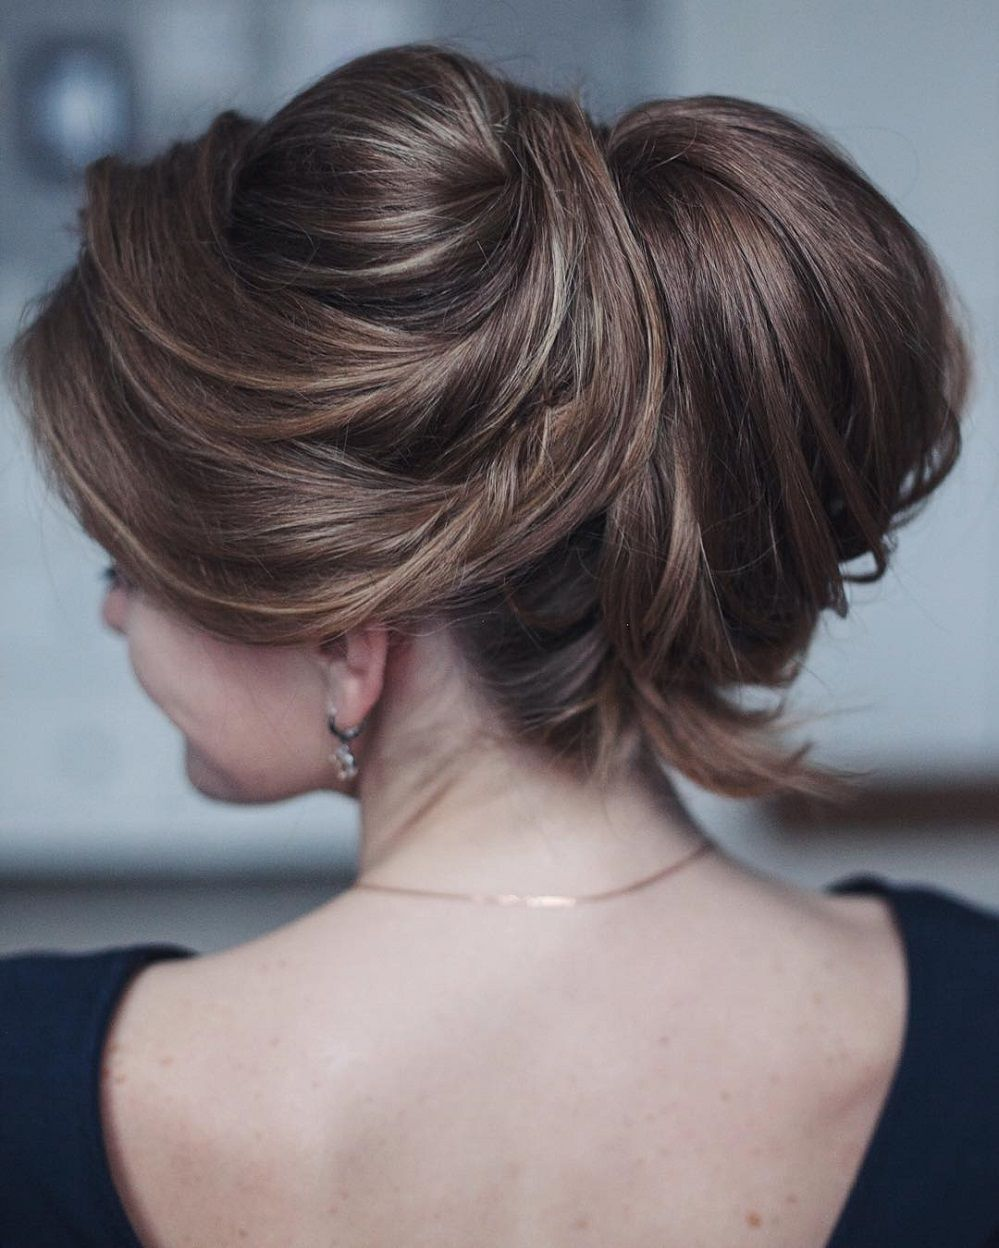 Gorgeous super-chic hairstyles That's Breathtaking